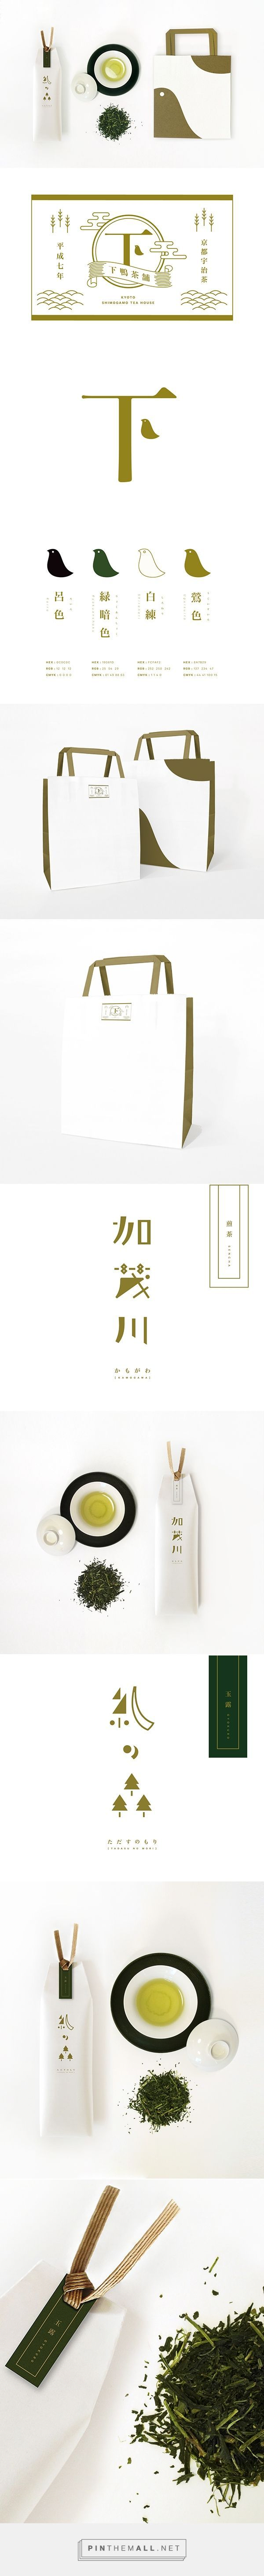 Shimogamo Tea House branding & packaging design on Behance by Nana Nozaki curated by Packaging Diva PD. Simple and lovely created via